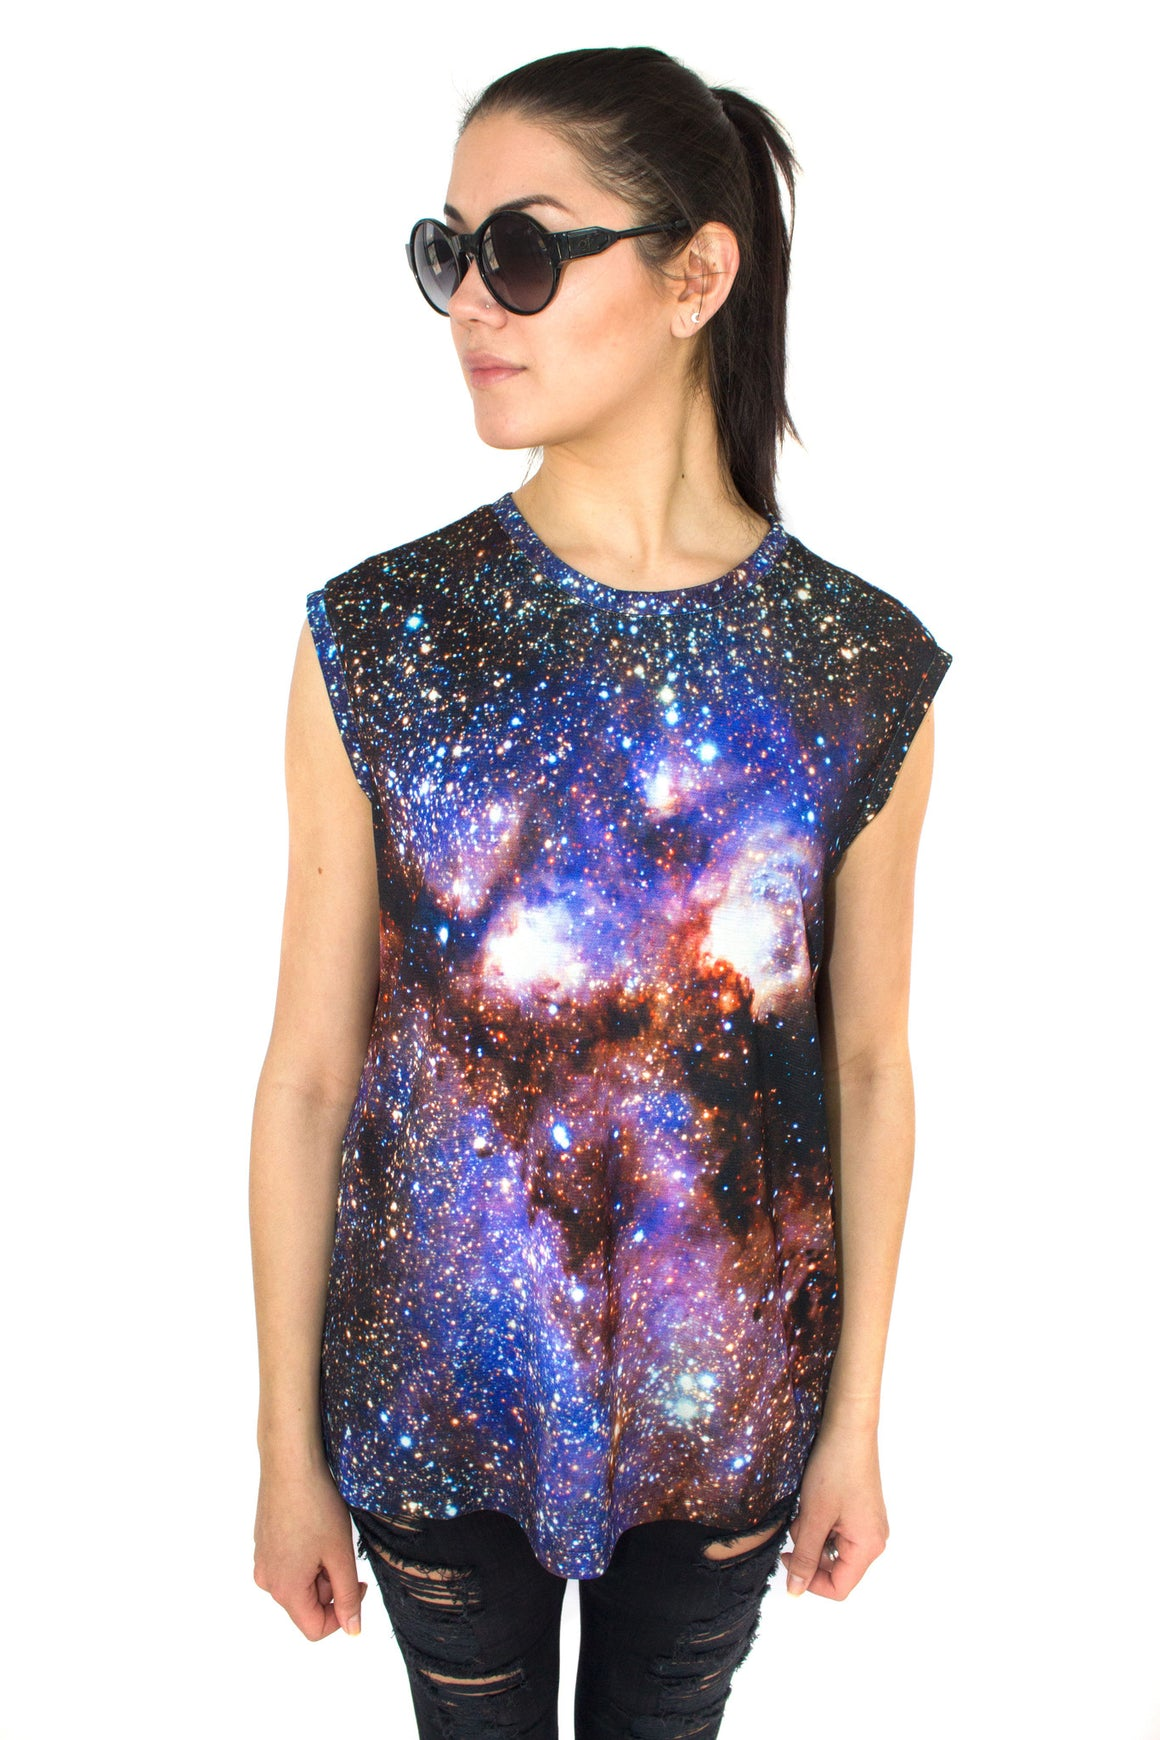 Milky Way Galaxy Tank, Shadowplaynyc, Galaxy Print Clothing